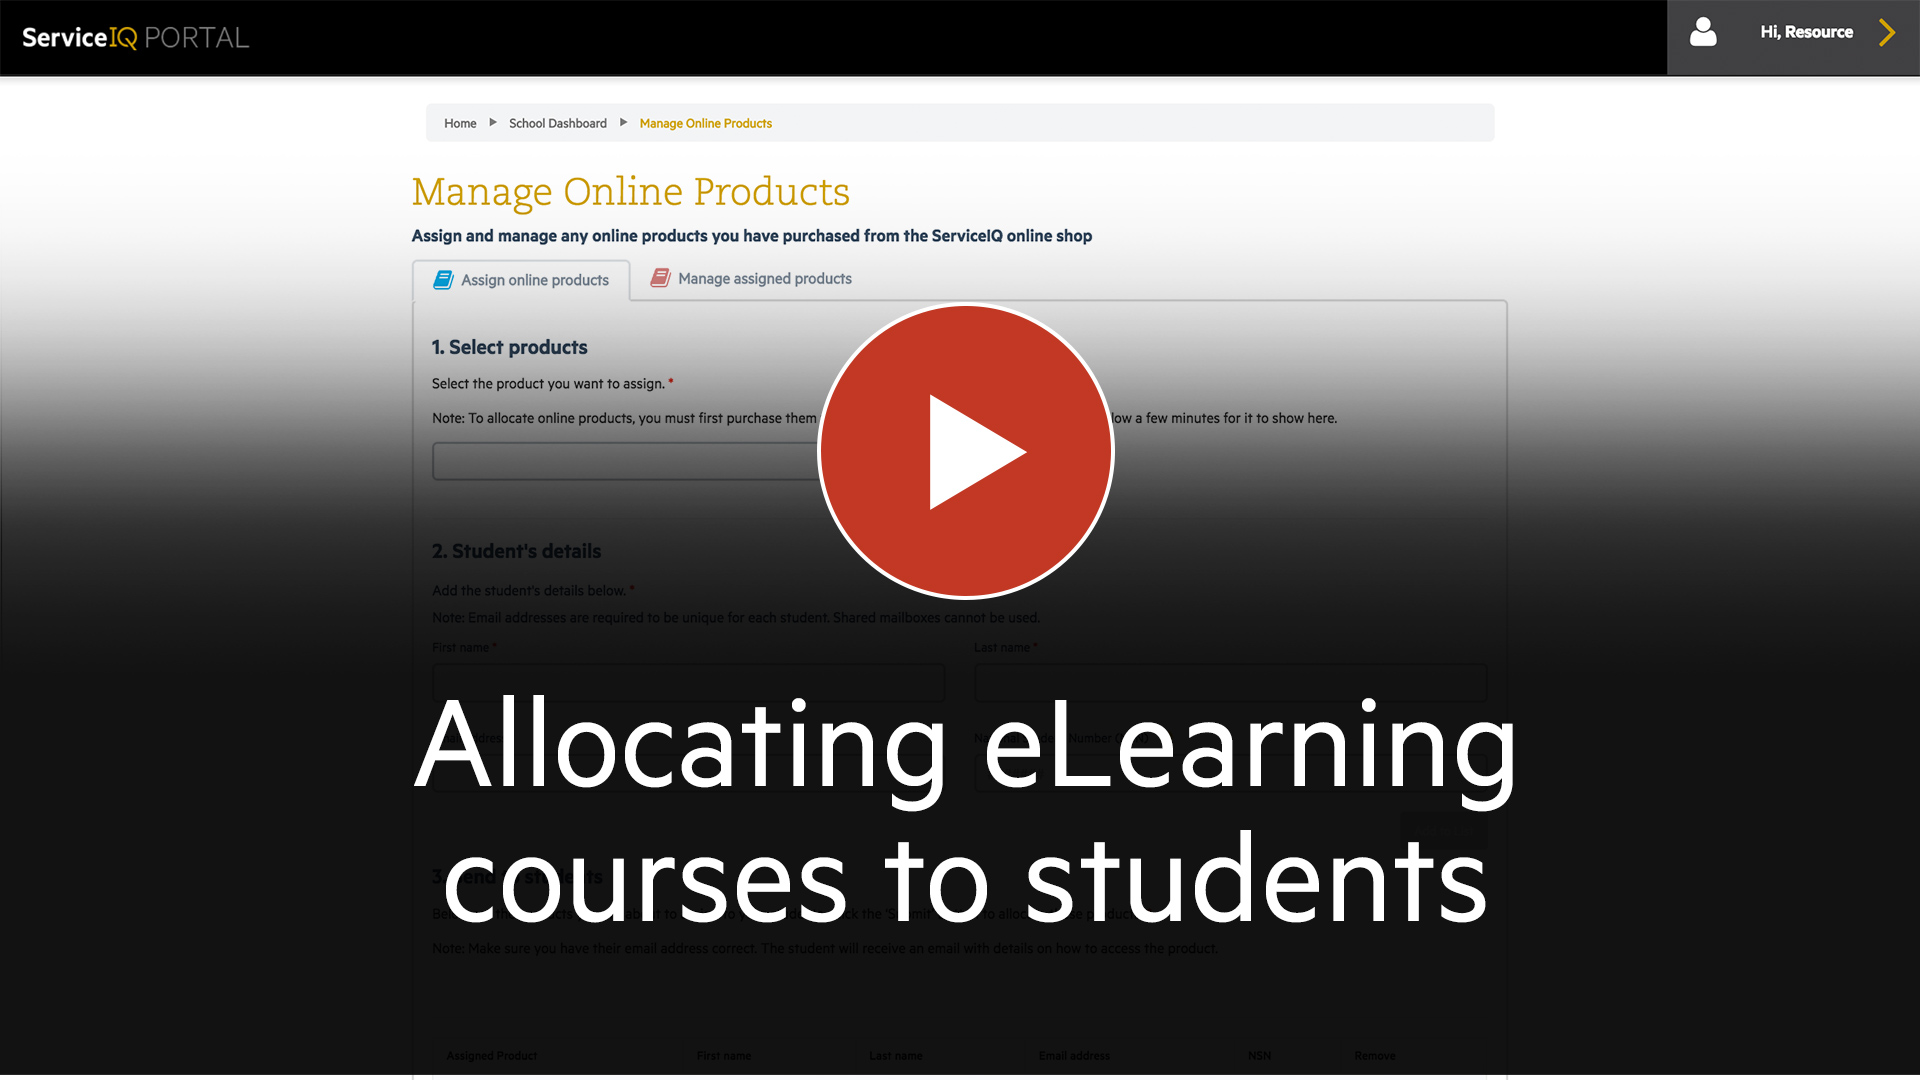 Allocating-eLearning-courses-to-students